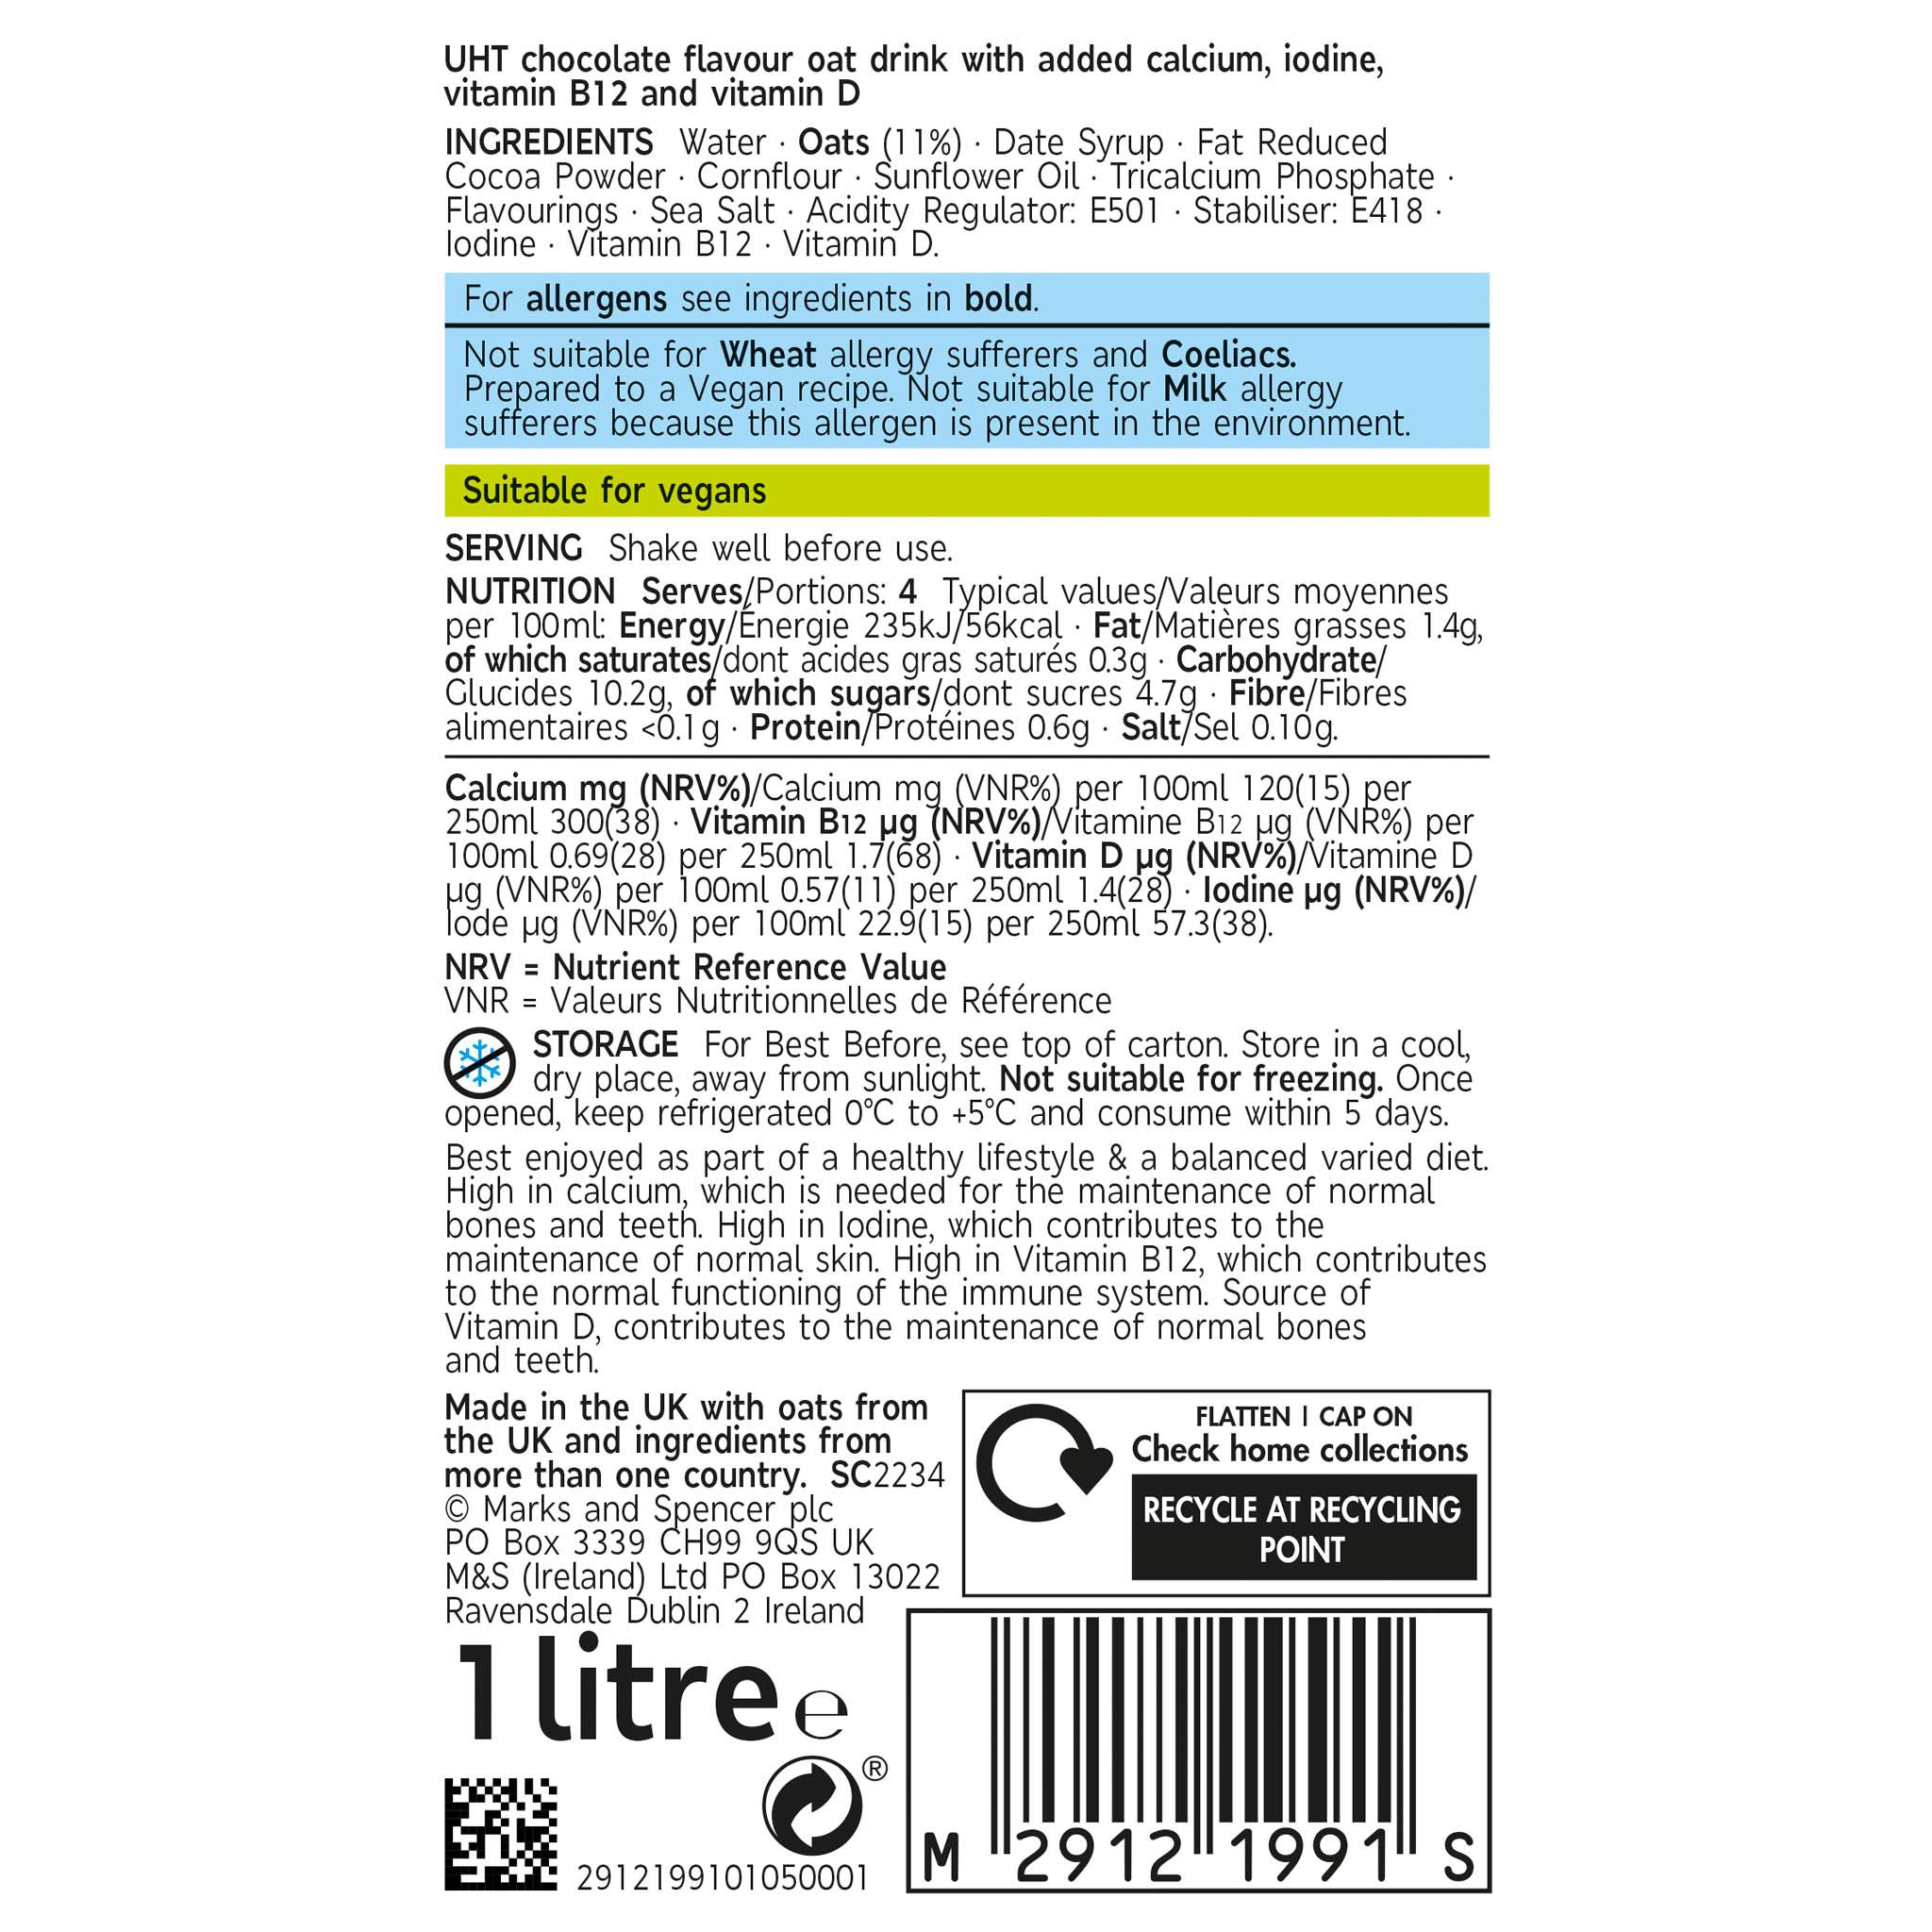 Plant Kitchen Chocolate Oat Drink 1 litre Label